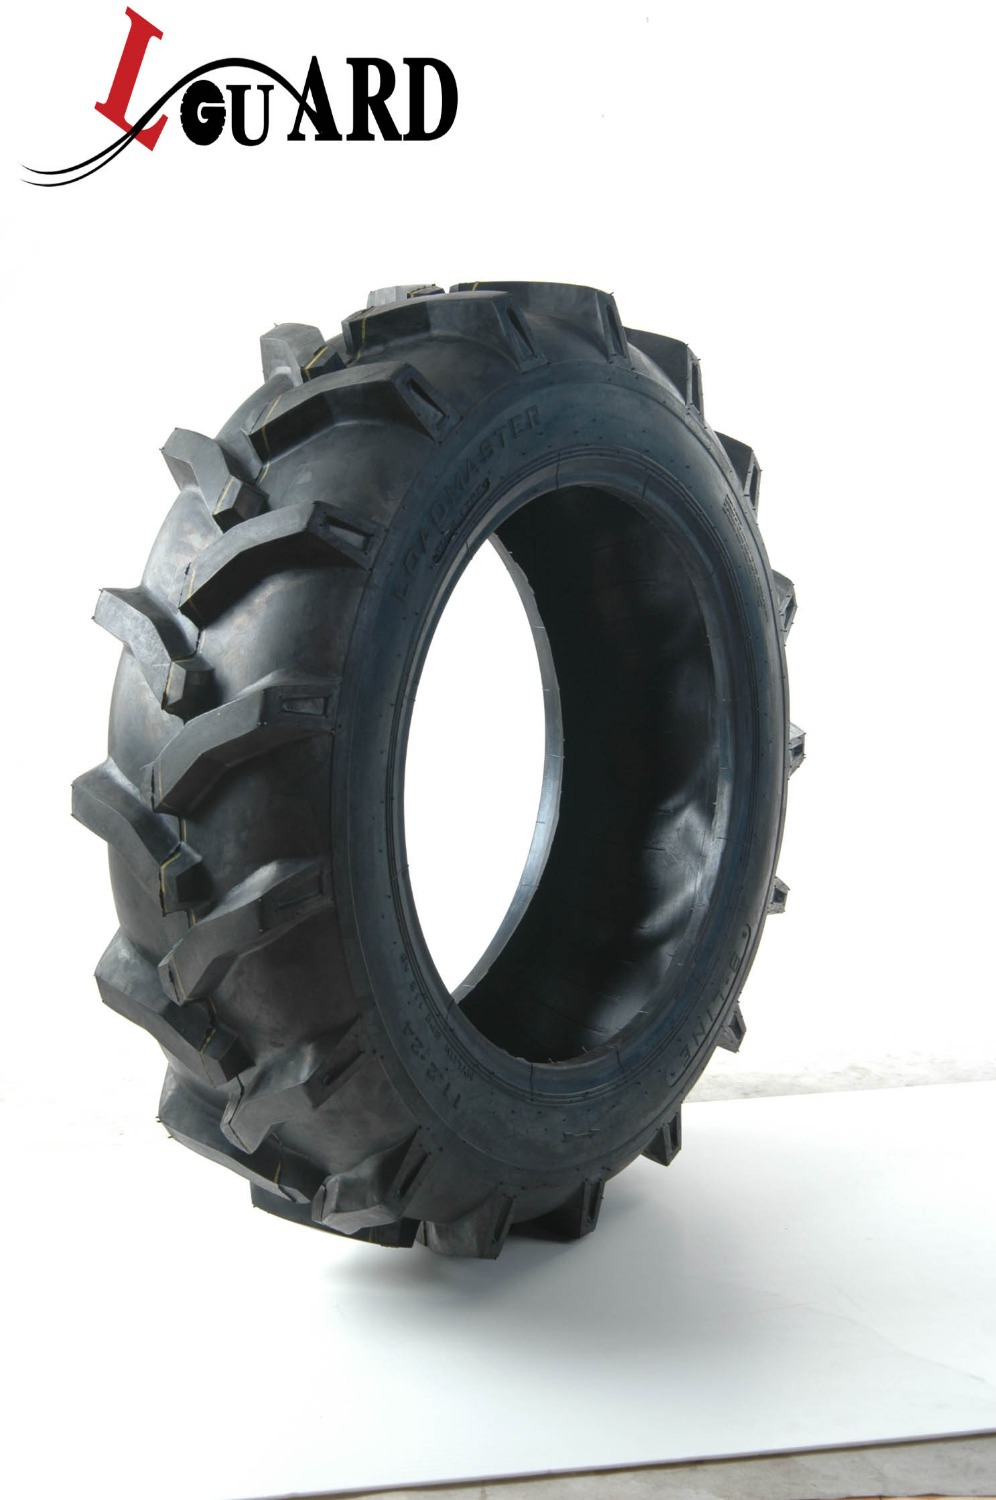 L-guard Agriculture tires 18.4-38-10PR(China (Mainland))